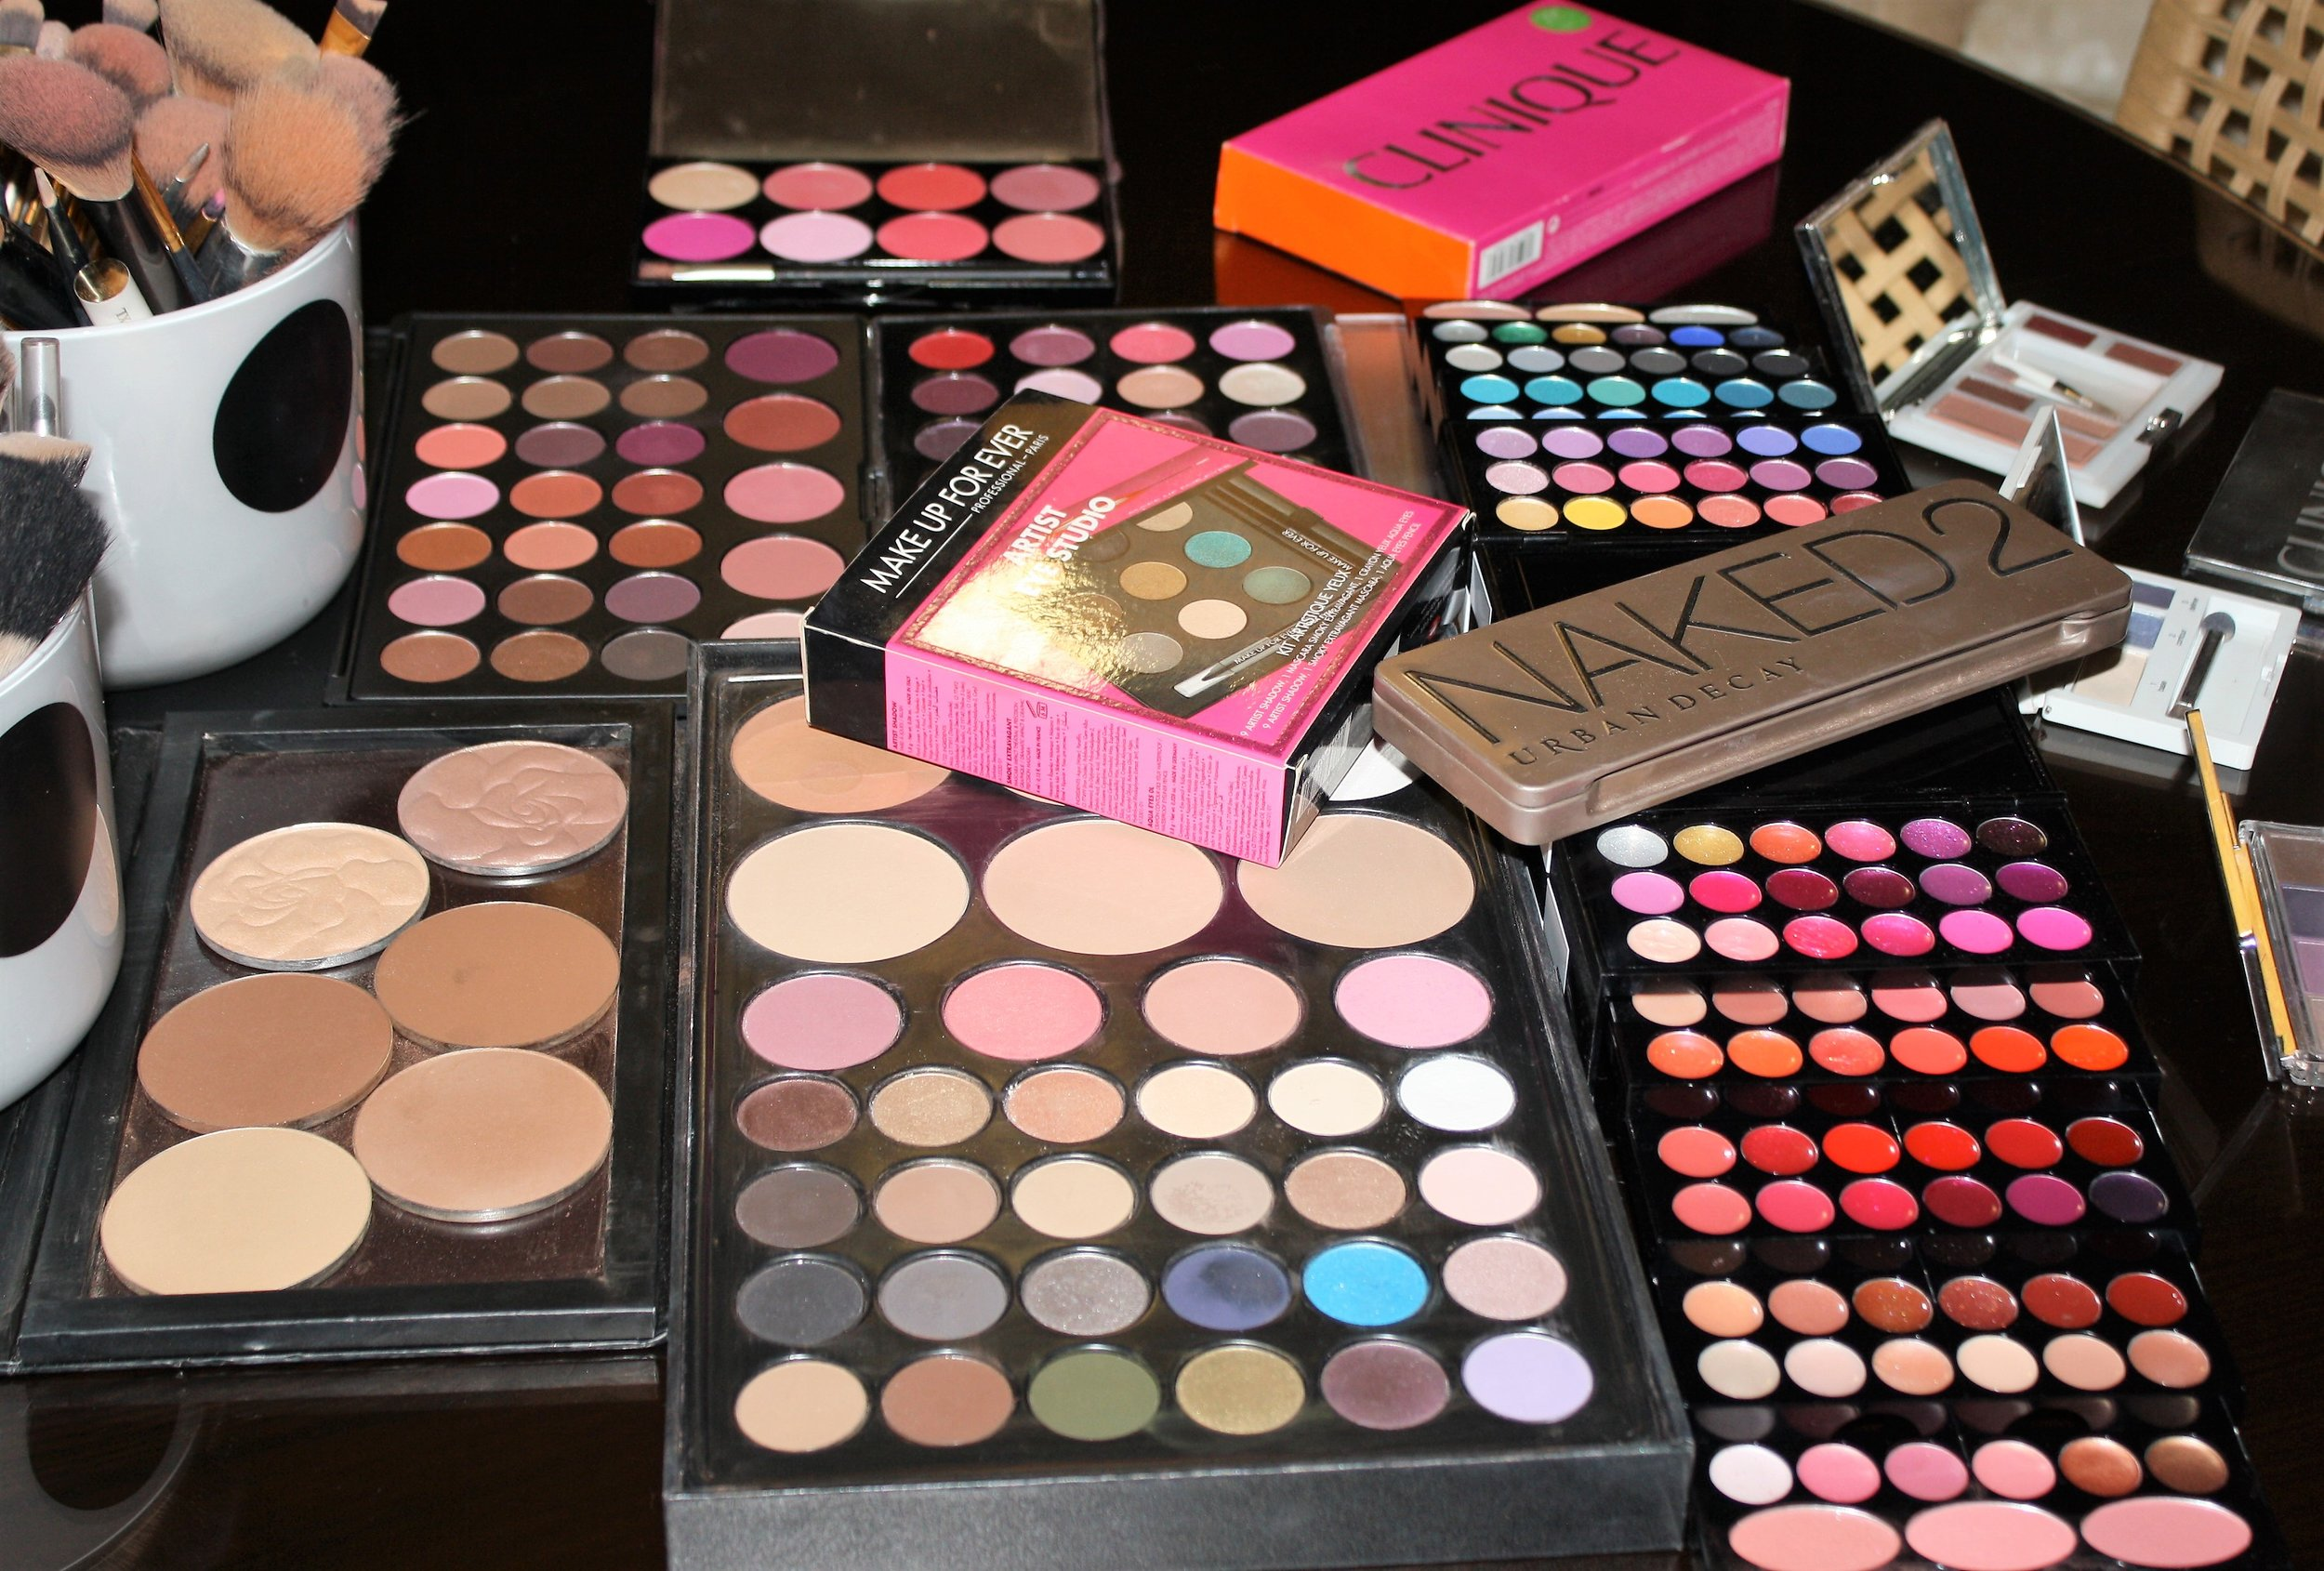 My palettes - Eyes, face, lips